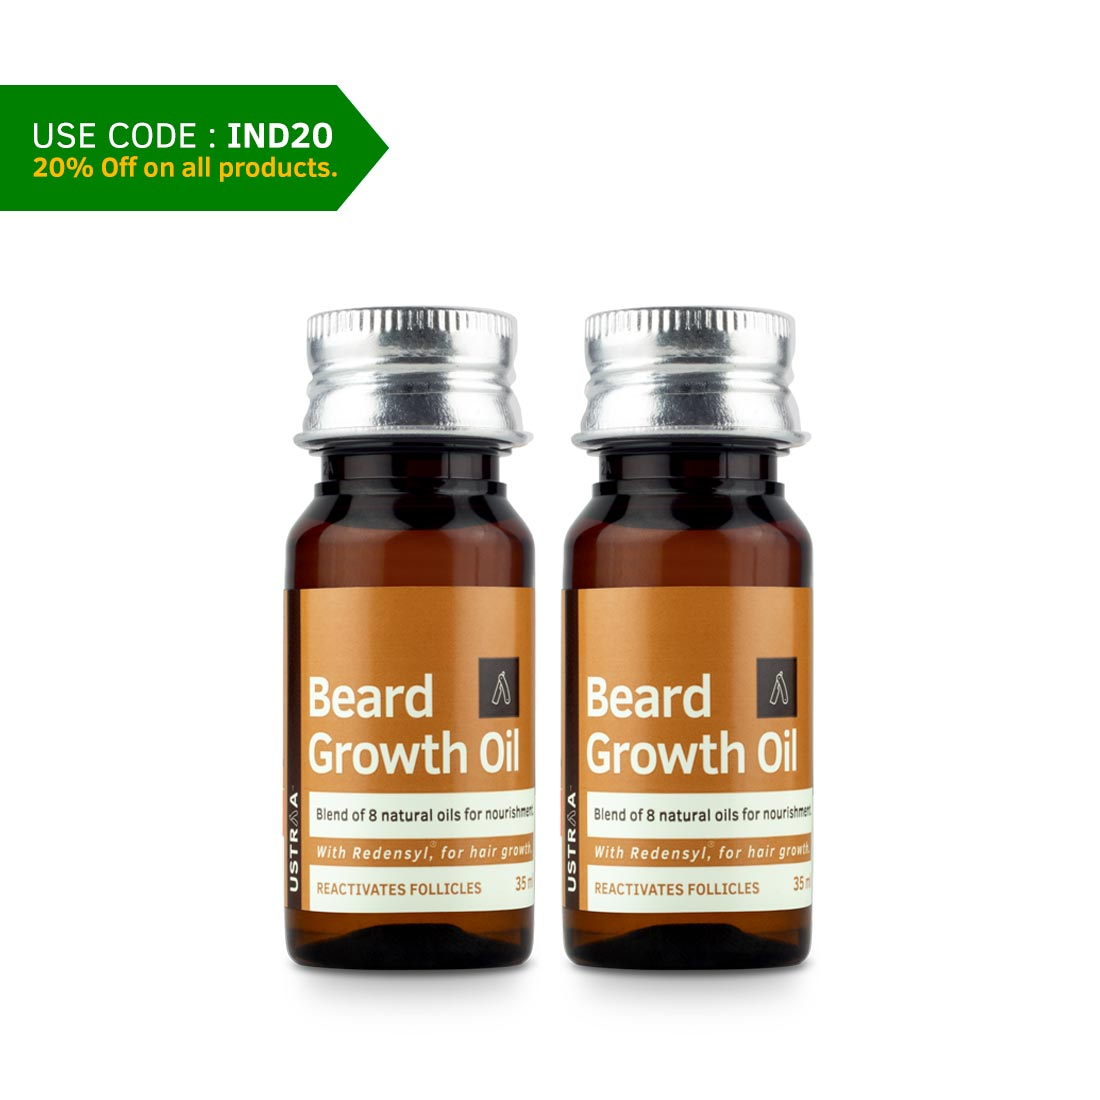 Beard Growth Oil - 35 ml - Set of 2